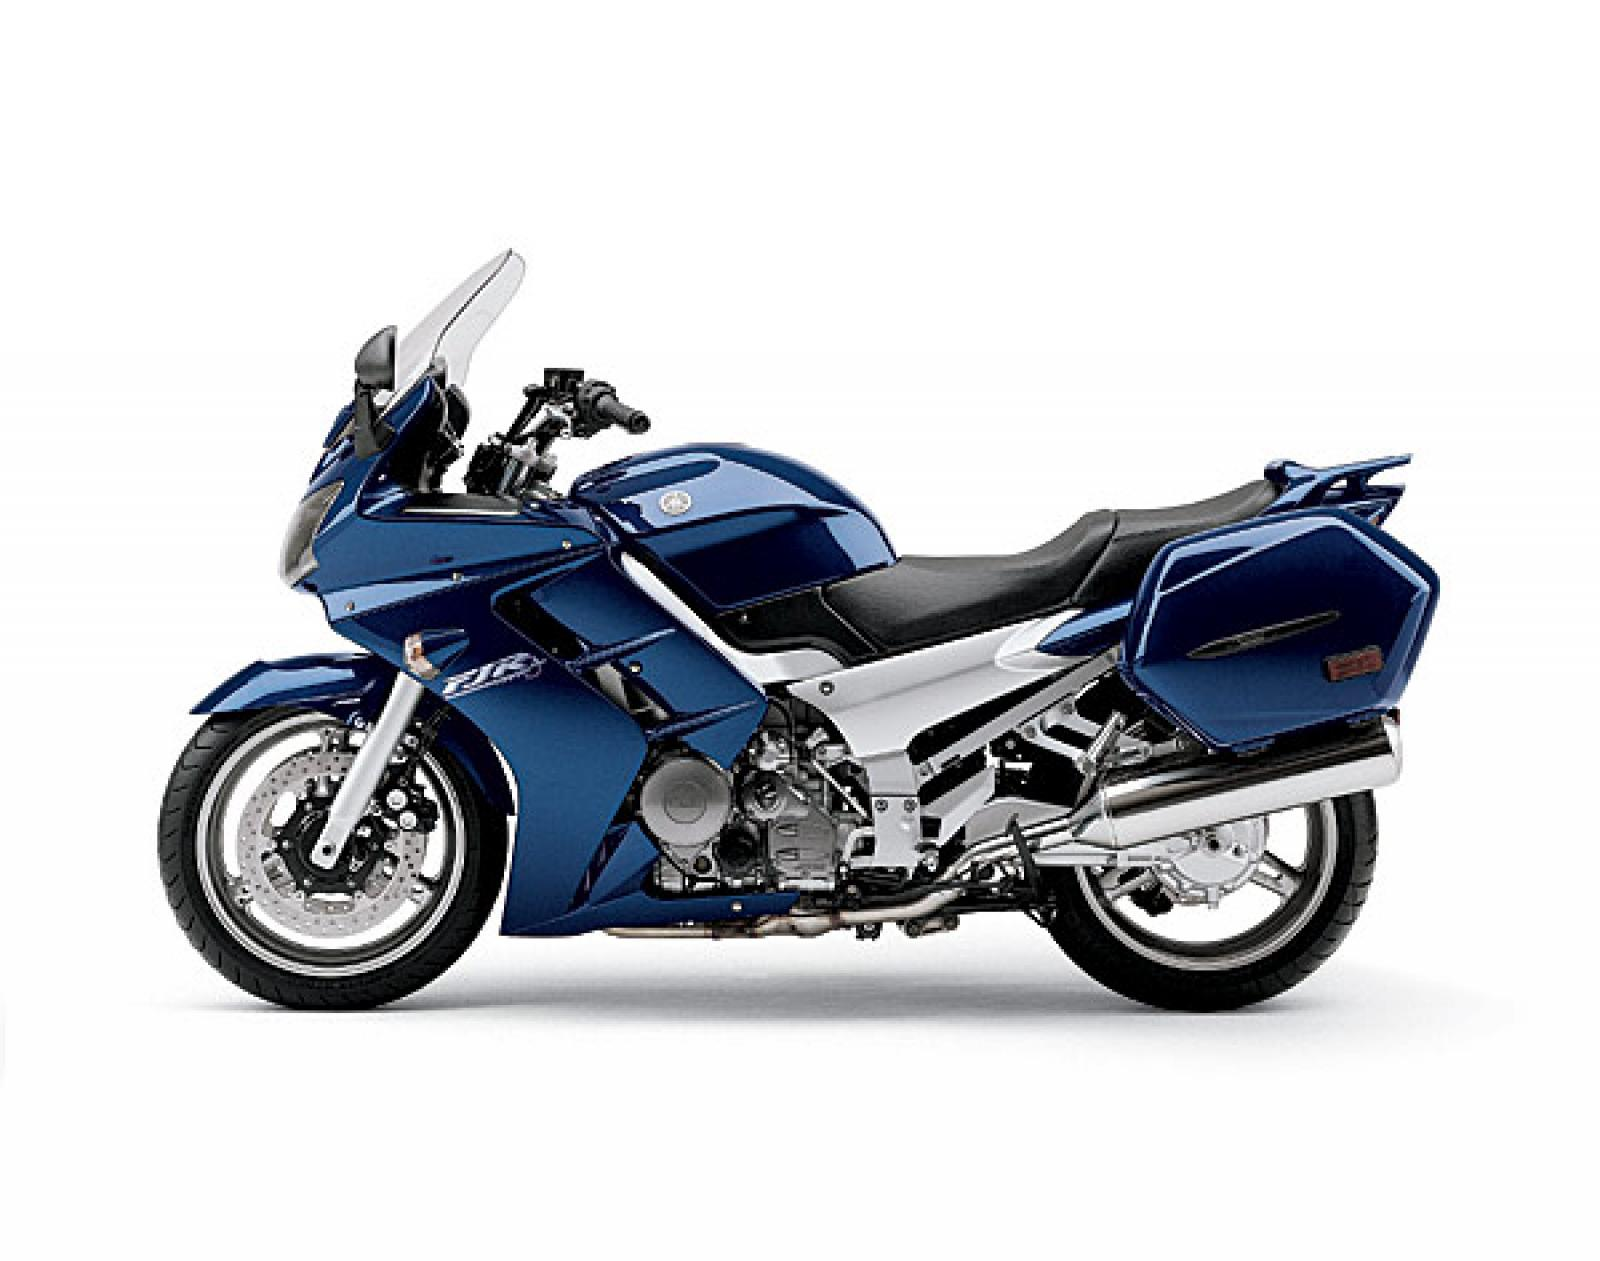 2004 yamaha fjr 1300 a moto zombdrive com. Black Bedroom Furniture Sets. Home Design Ideas